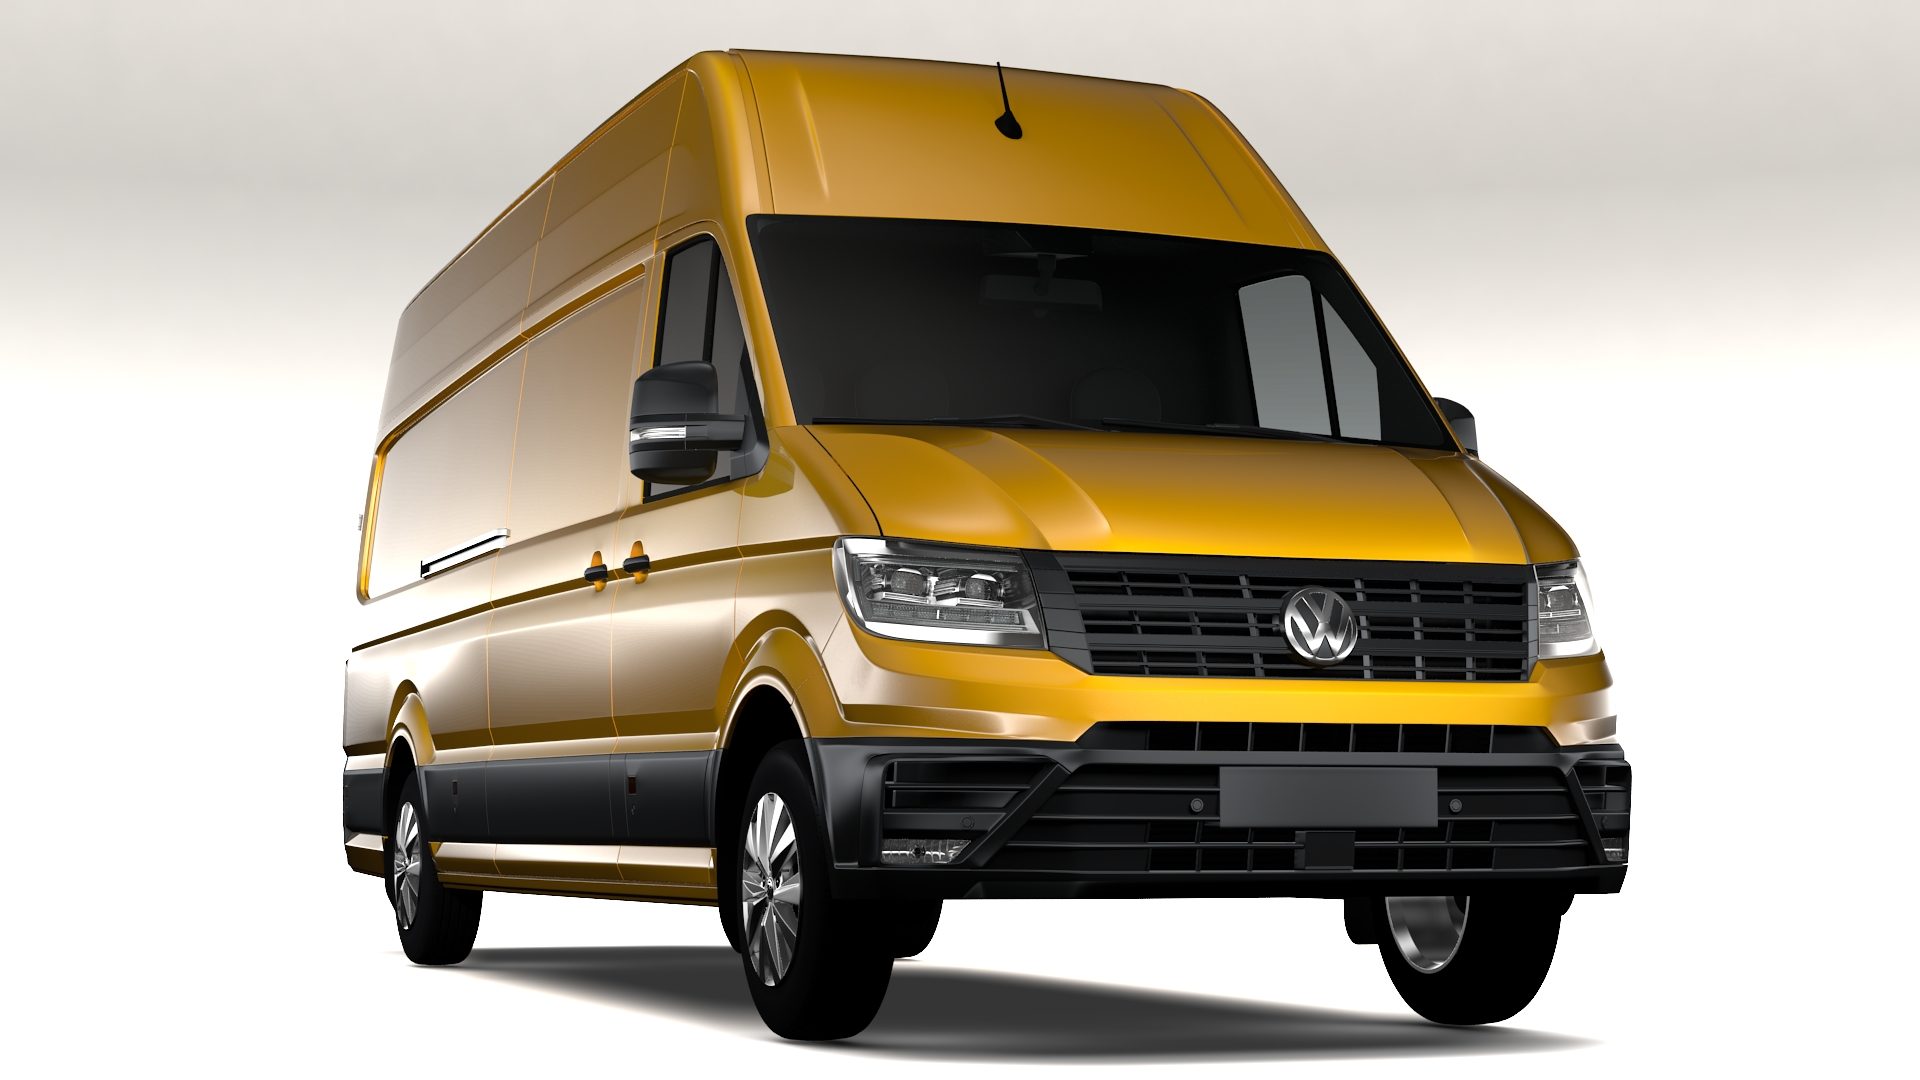 wv crafter van l4h3 2017 3d model 3ds max fbx c4d